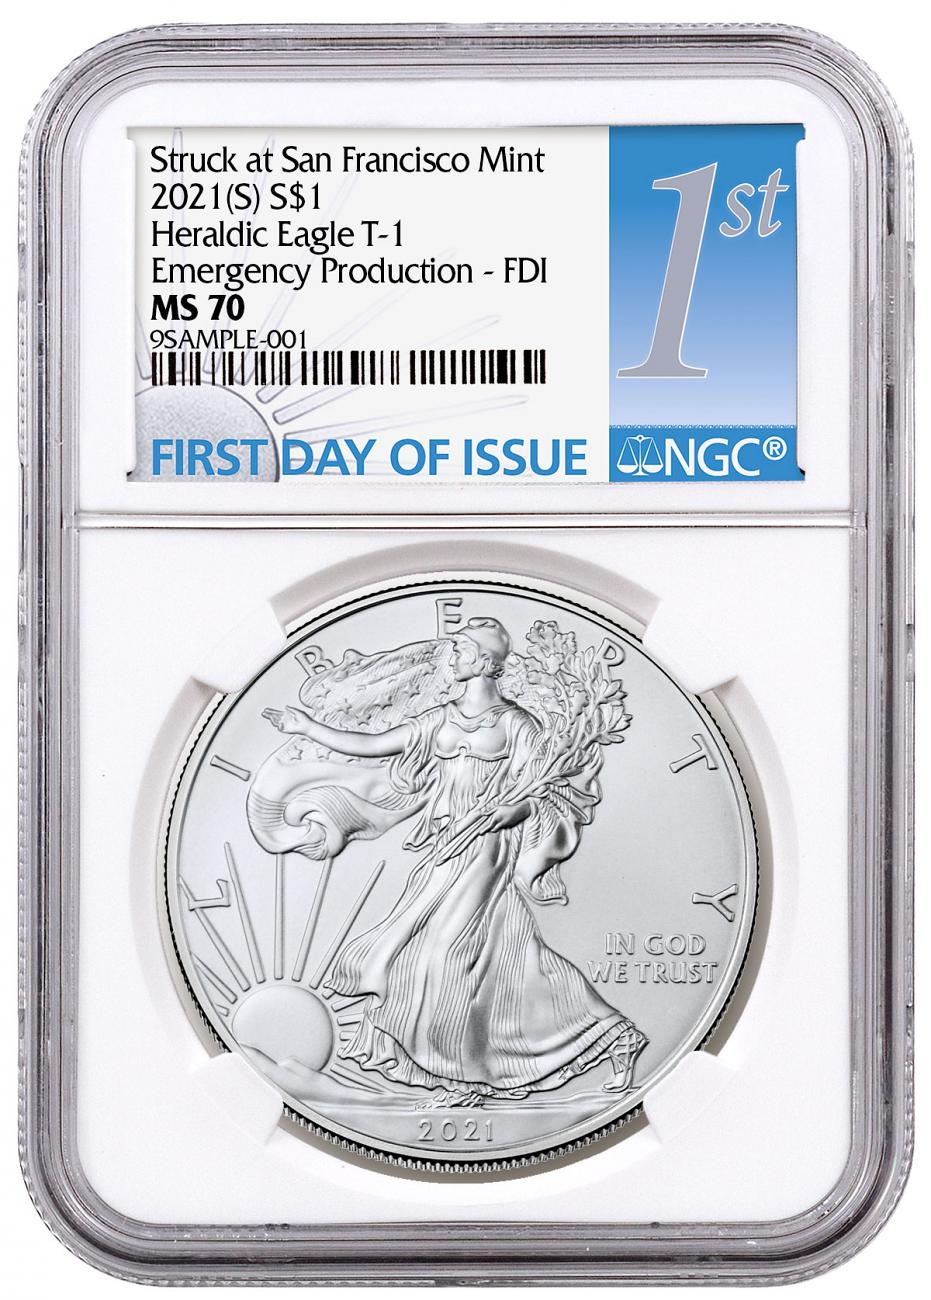 2021-(S) American Silver Eagle Emergency Production Struck at San Francisco Mint T-1 NGC MS70 FDI 1st Day Label